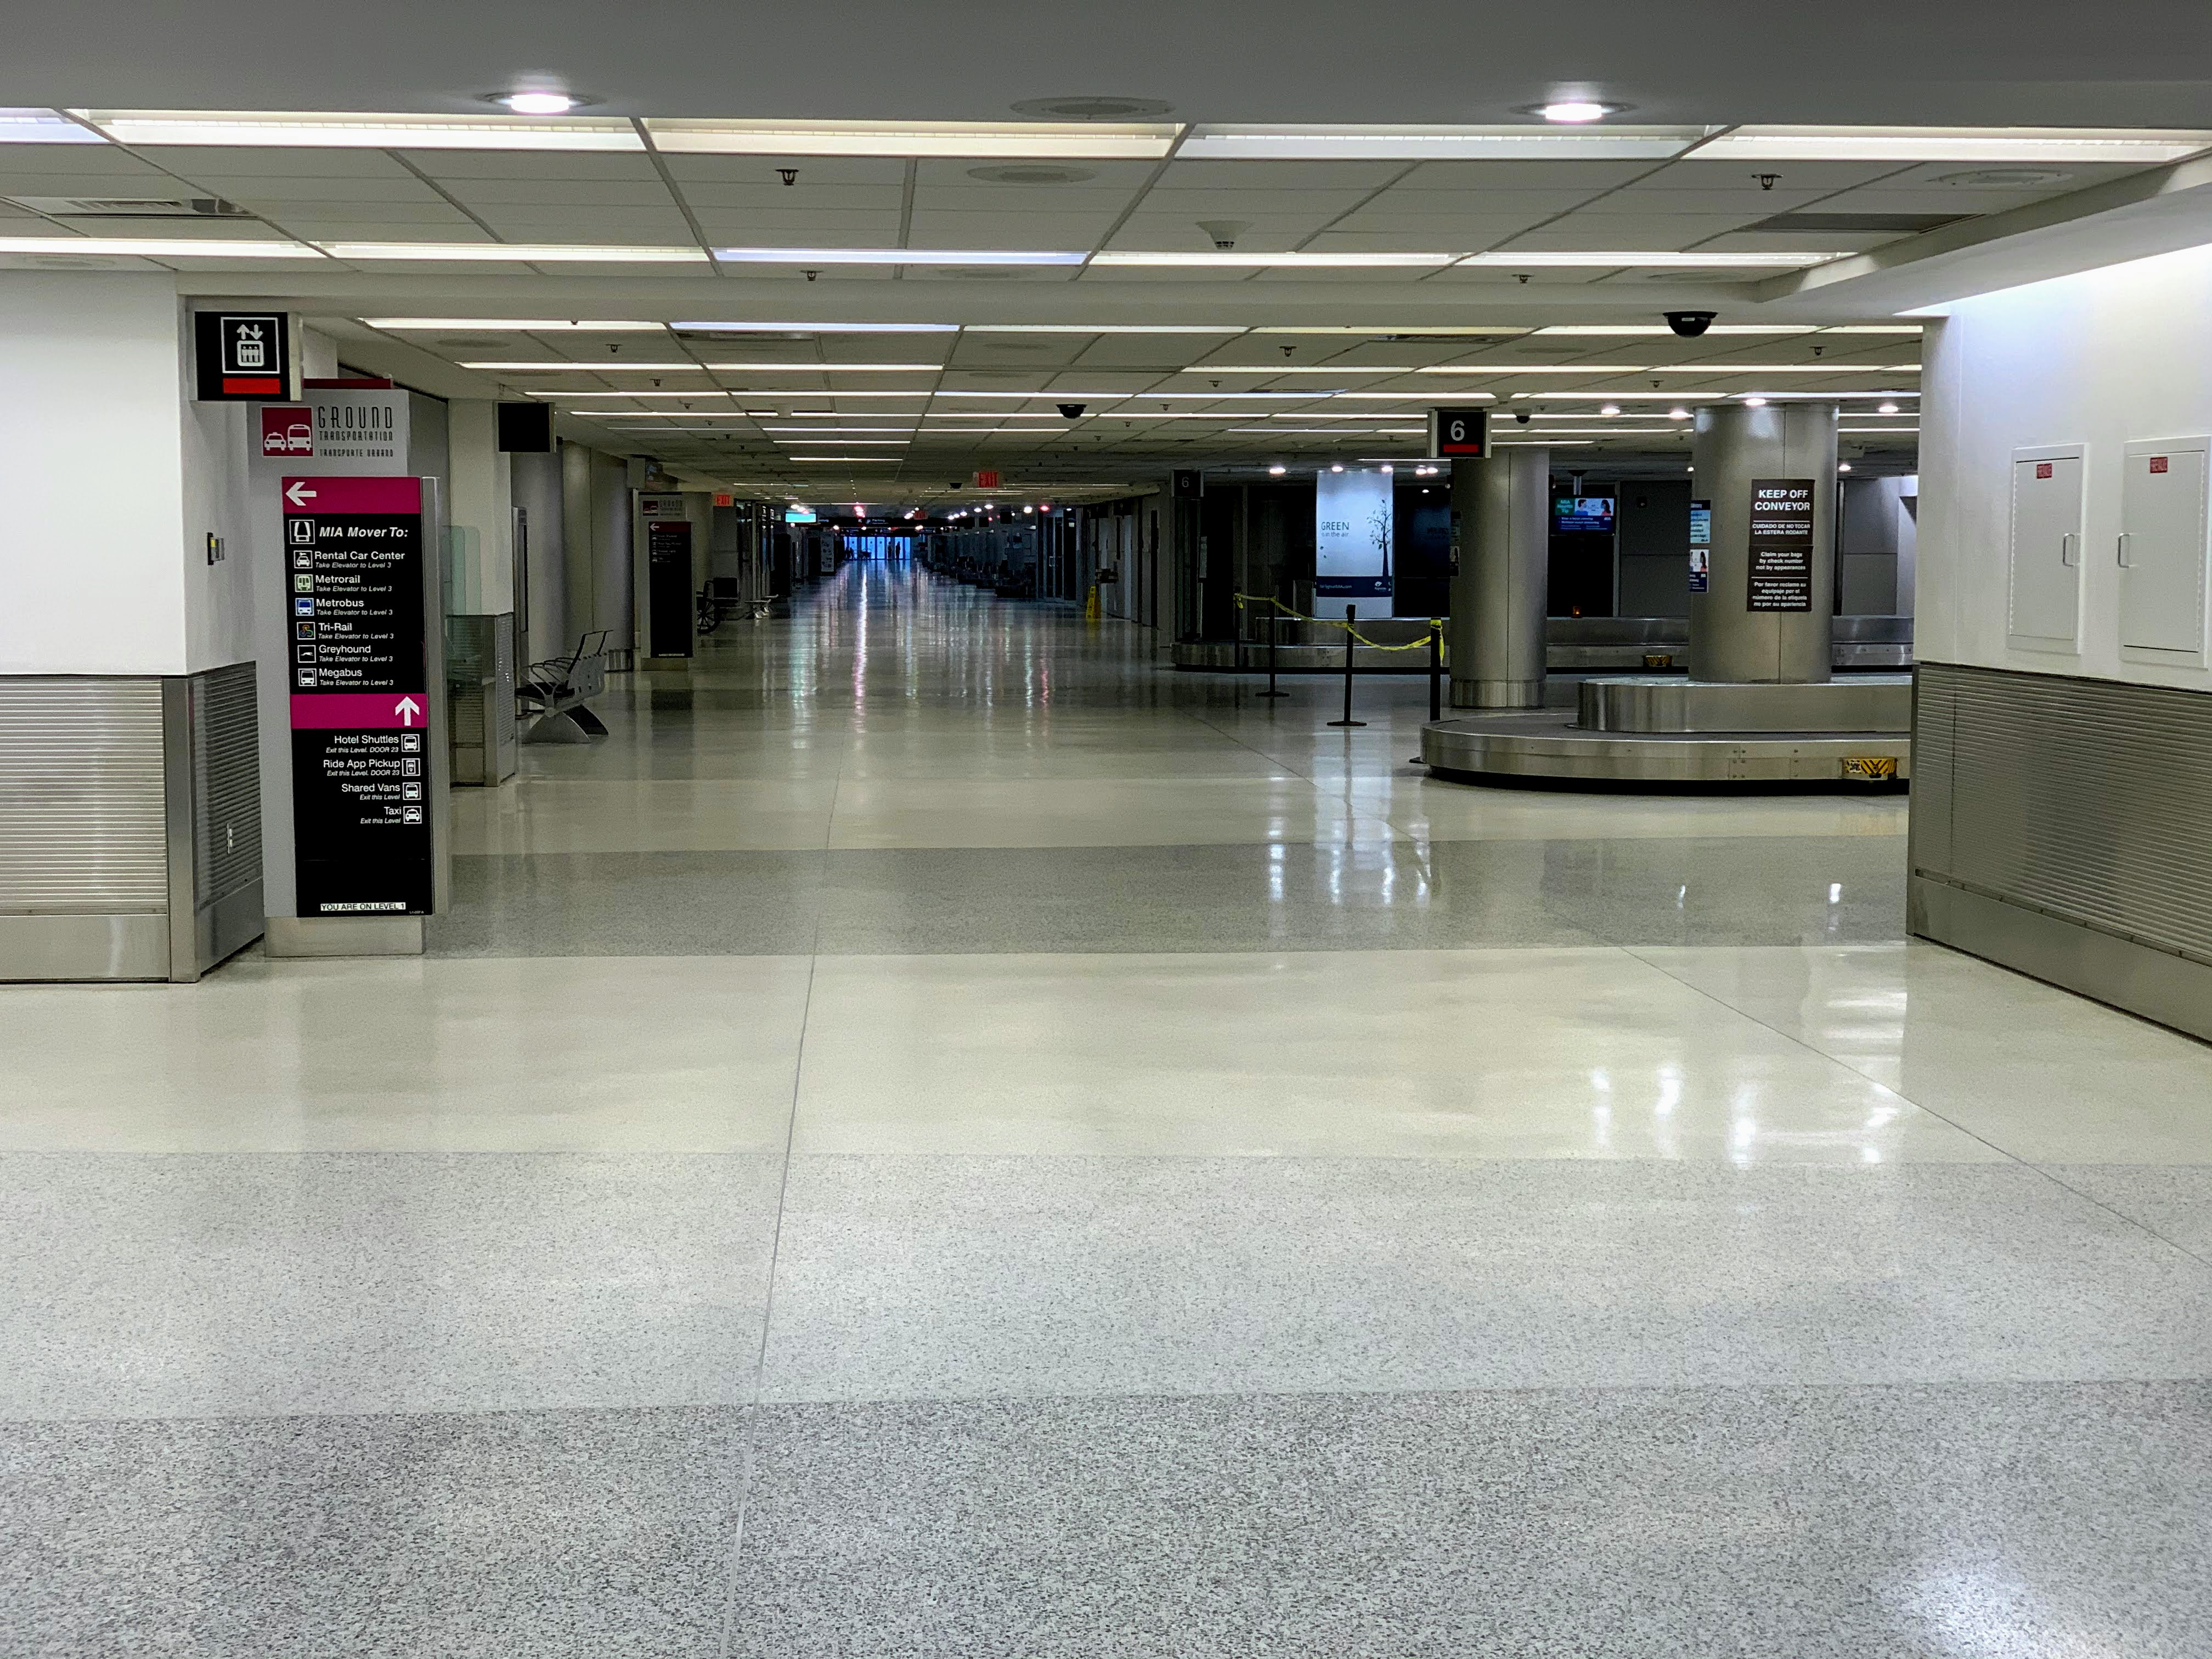 The airport has large areas that are not functioning